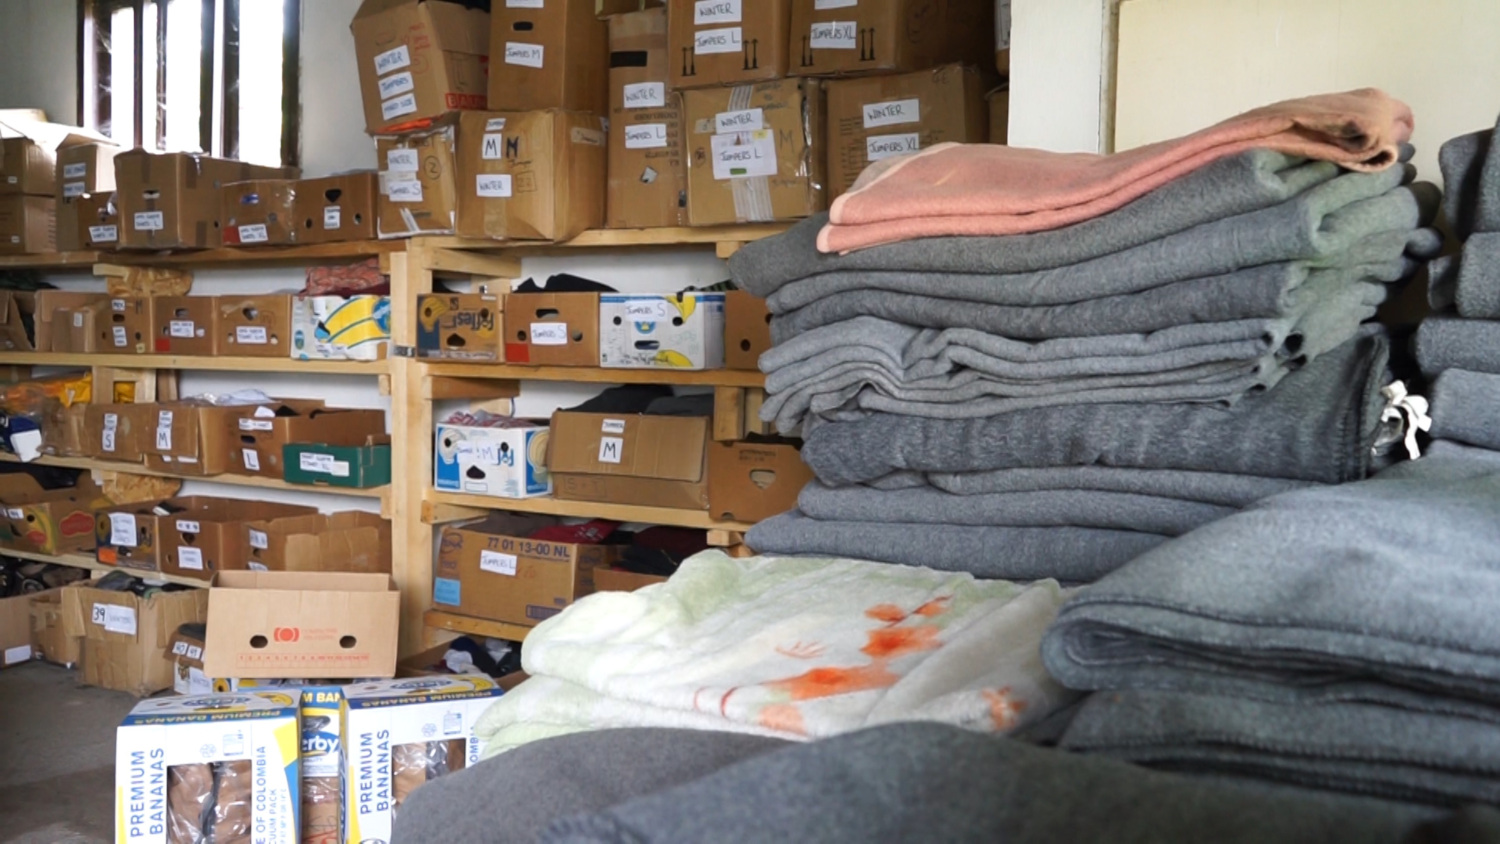 Winter Aid   With thousands expected to be stuck outside this winter in the Balkans, and a lack of resources and support for those people, Collective Aid is committed to coordinating fundraising, collection and distribution of winter aid so people don't freeze.    Read more…